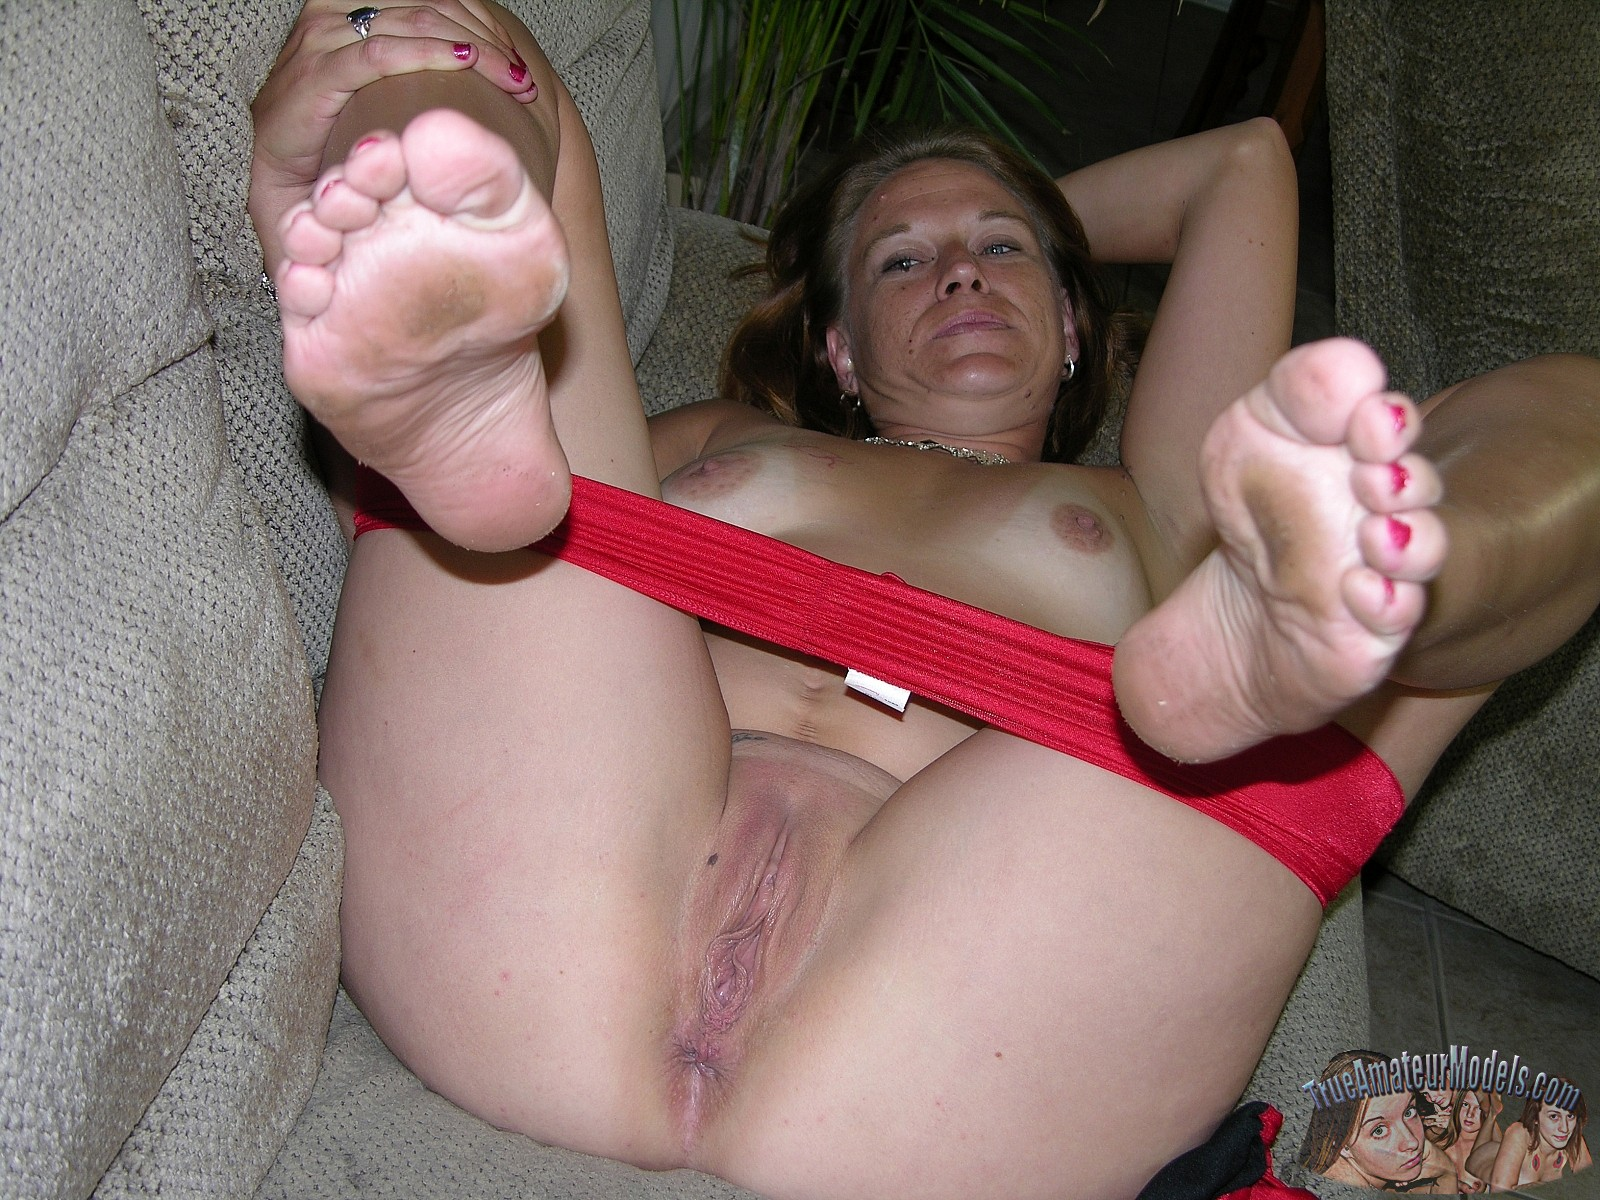 Mature site trailer nude right!